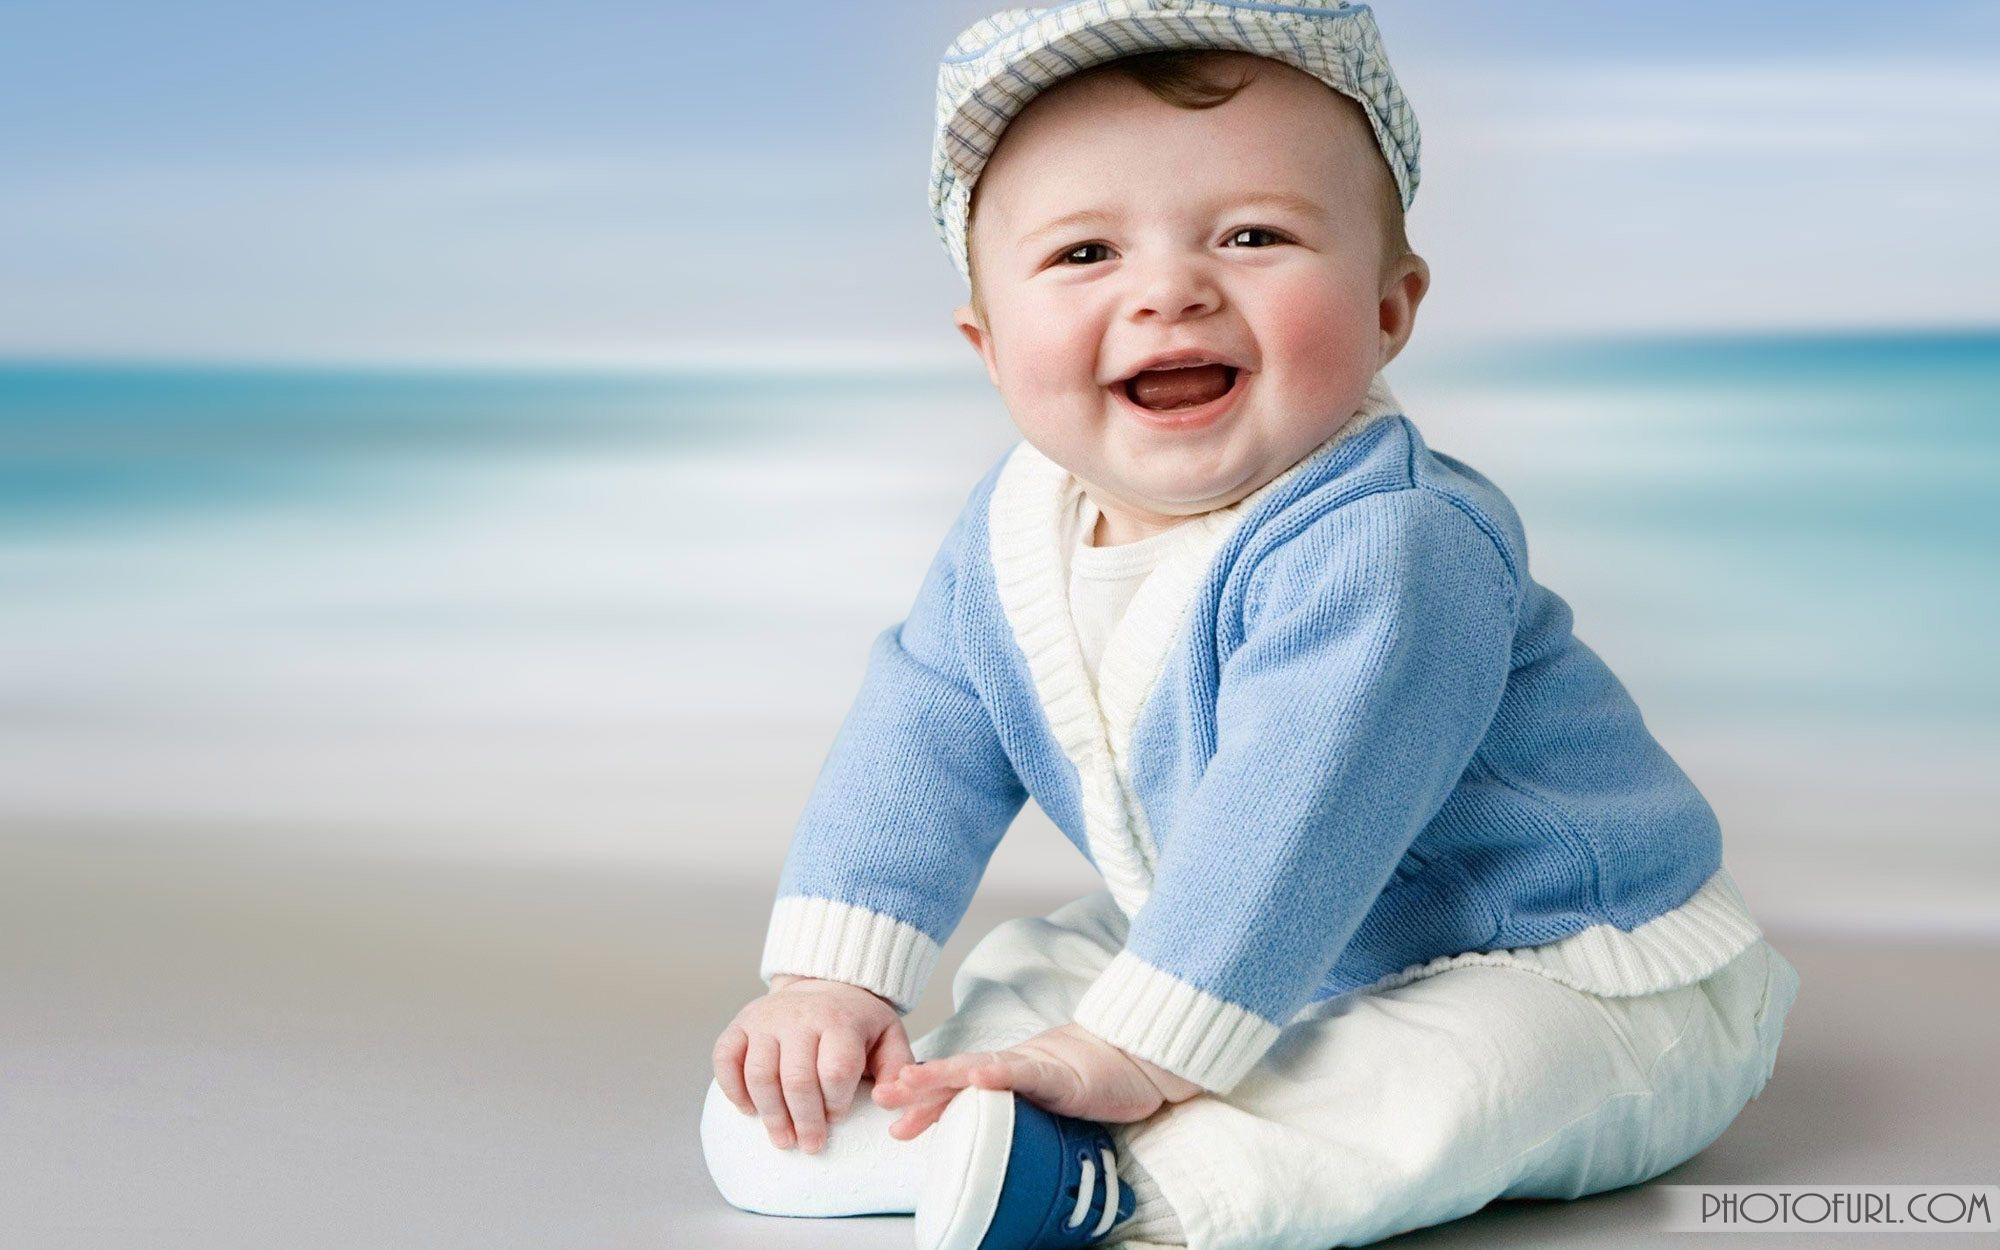 Cute Baby Wallpapers For Laptop Baby Wallpaper Cute Baby Wallpaper Baby Wallpaper Hd